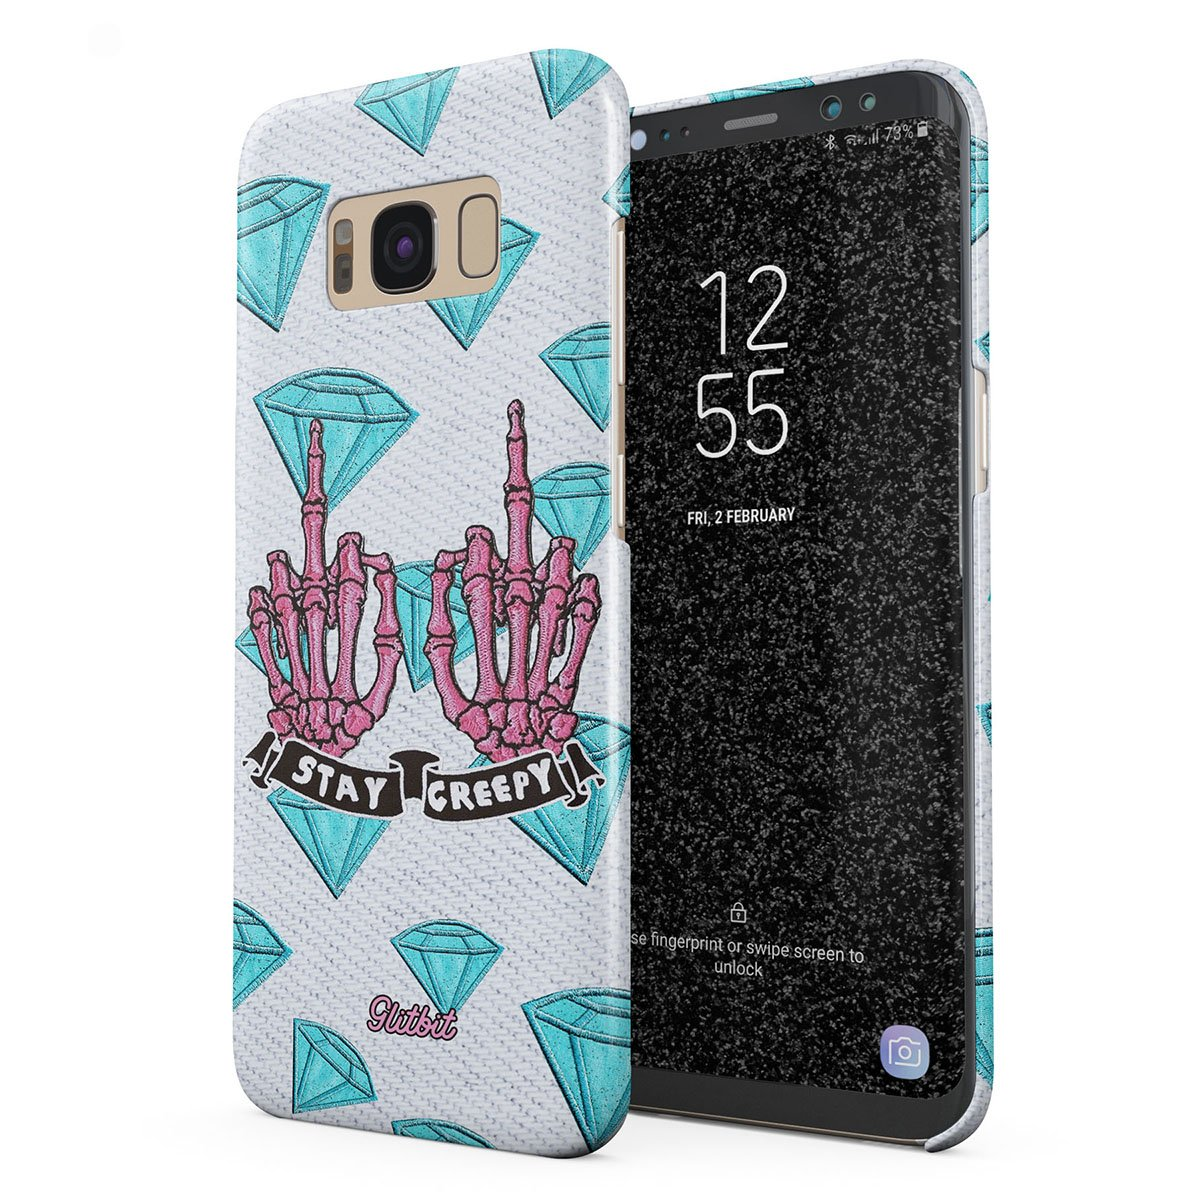 Glitbit Compatible with Samsung Galaxy S8 Case Stay Creepy Stay Weird  Diamond Patches Emo Goth Punk Kawaii Grunge Middle Finger Bitch Thin Design